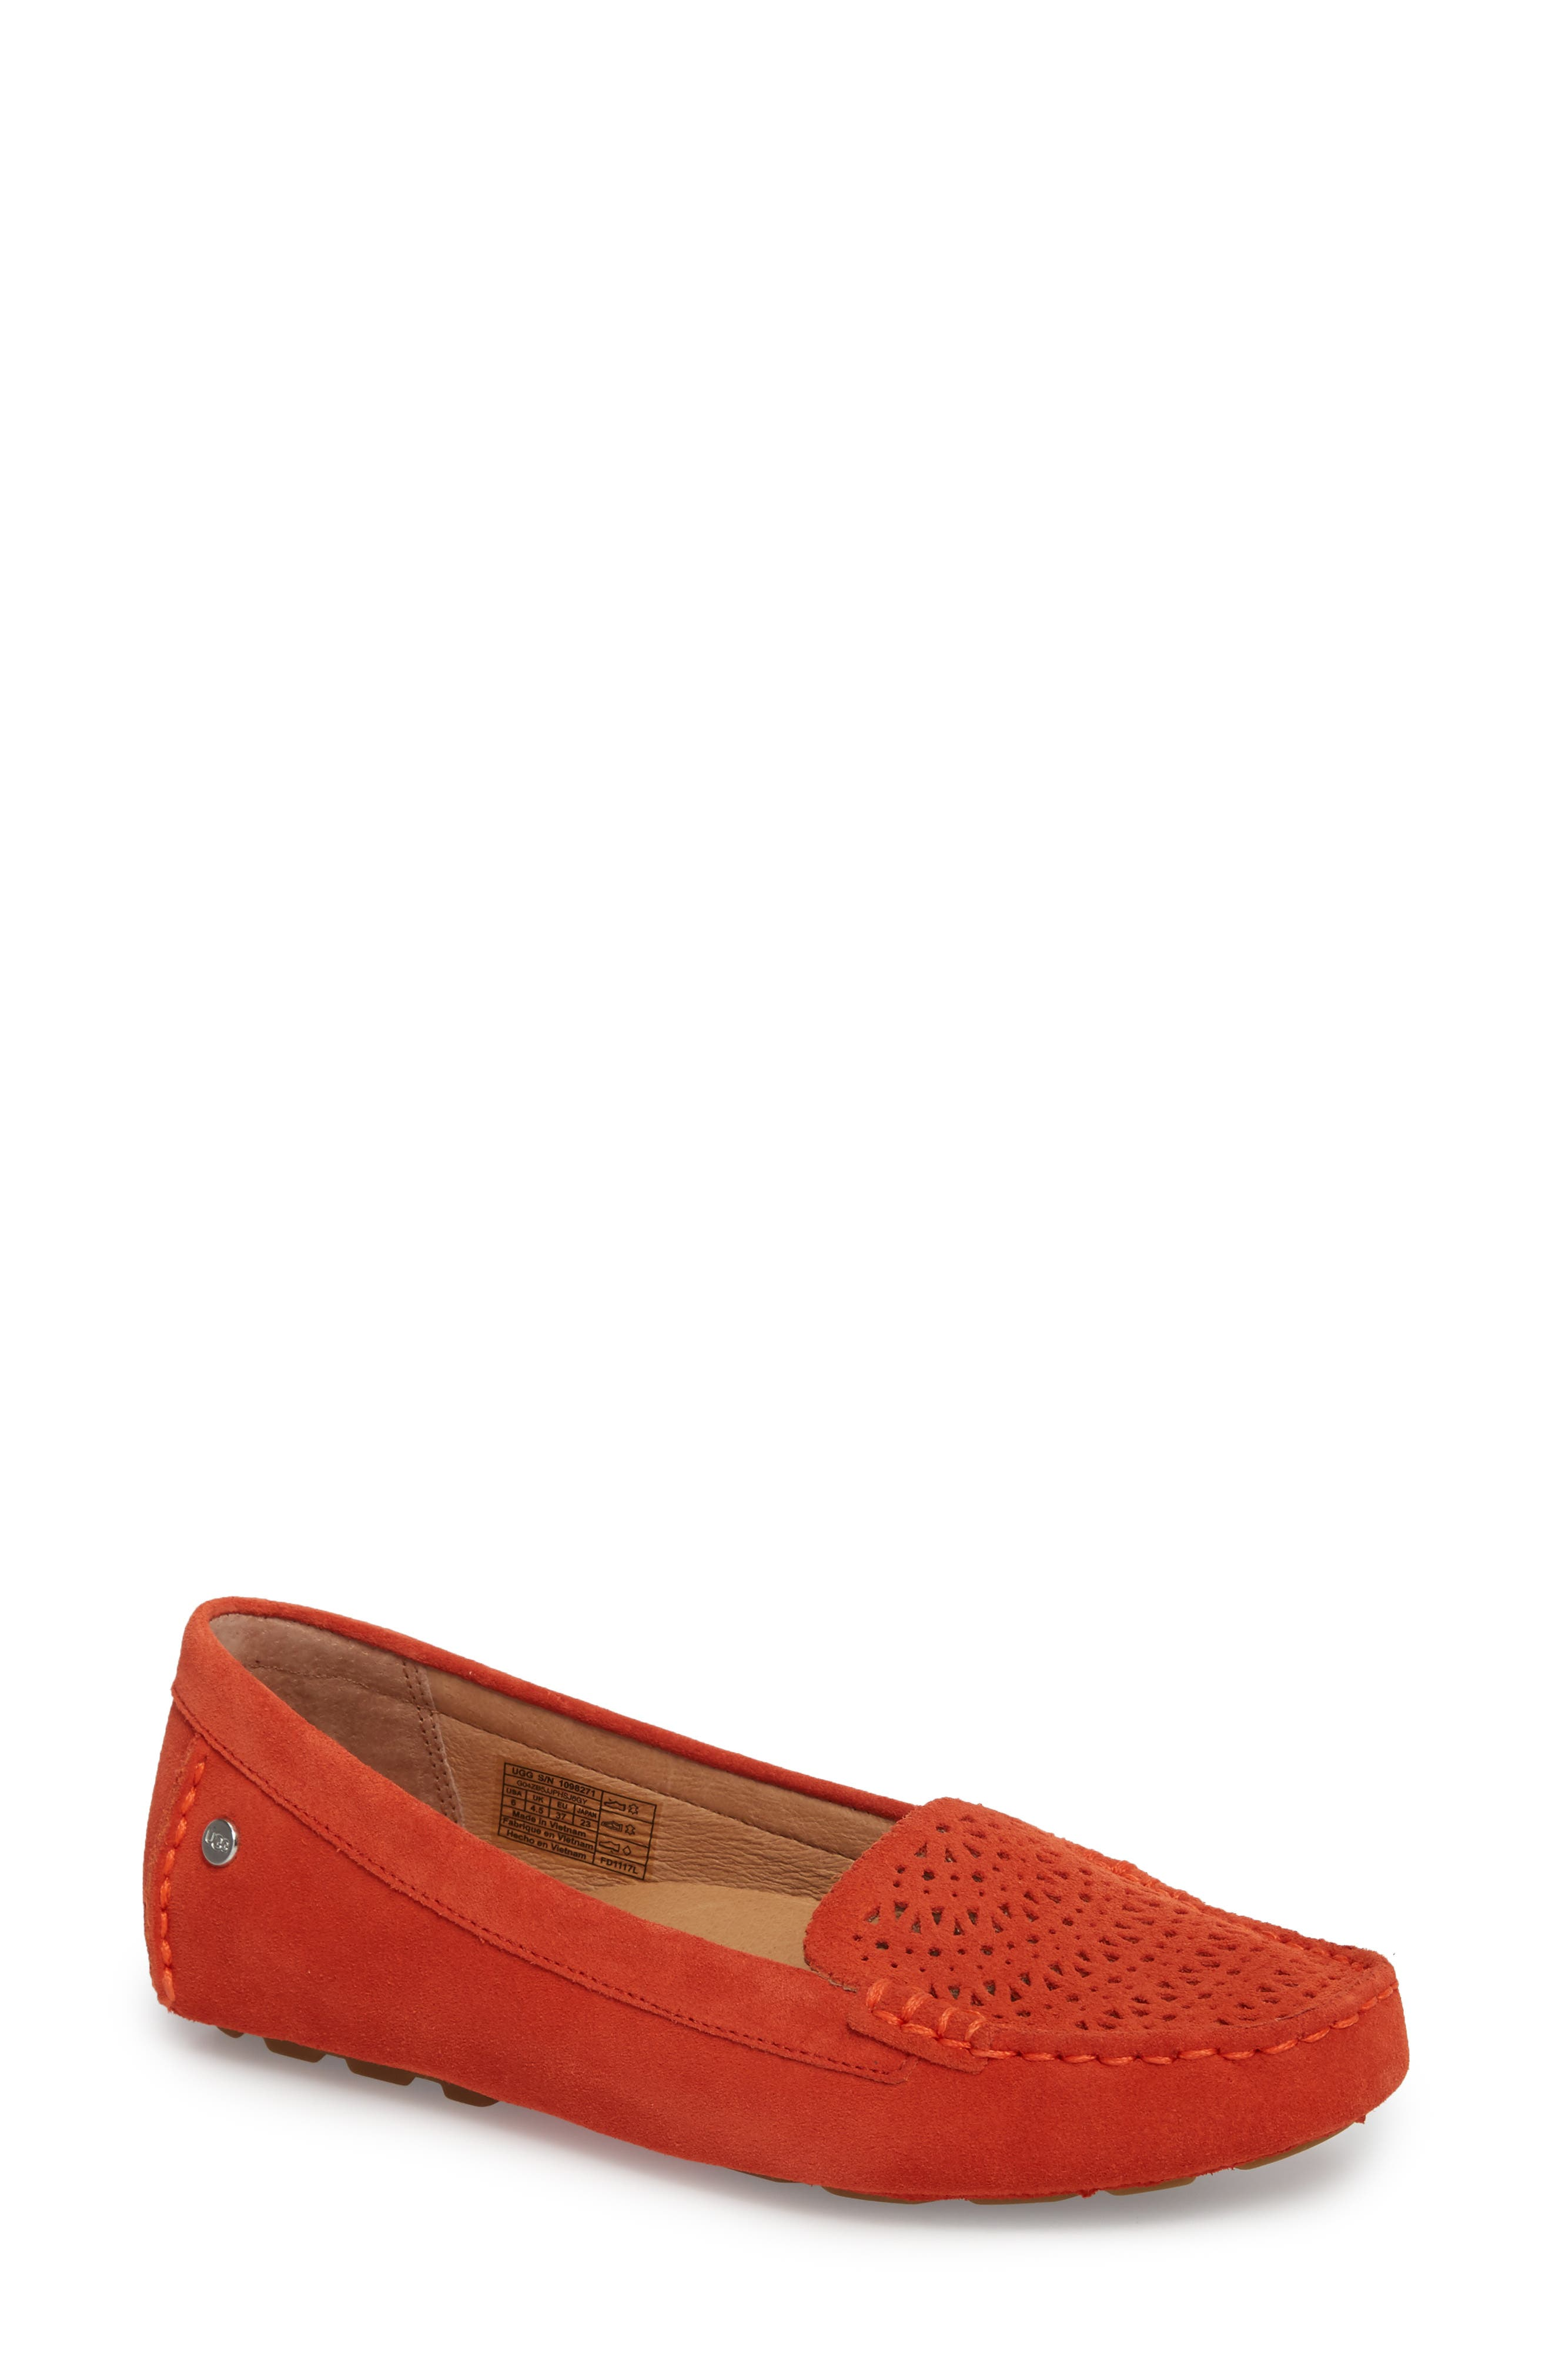 Clair Flat,                         Main,                         color, Red Orange Suede